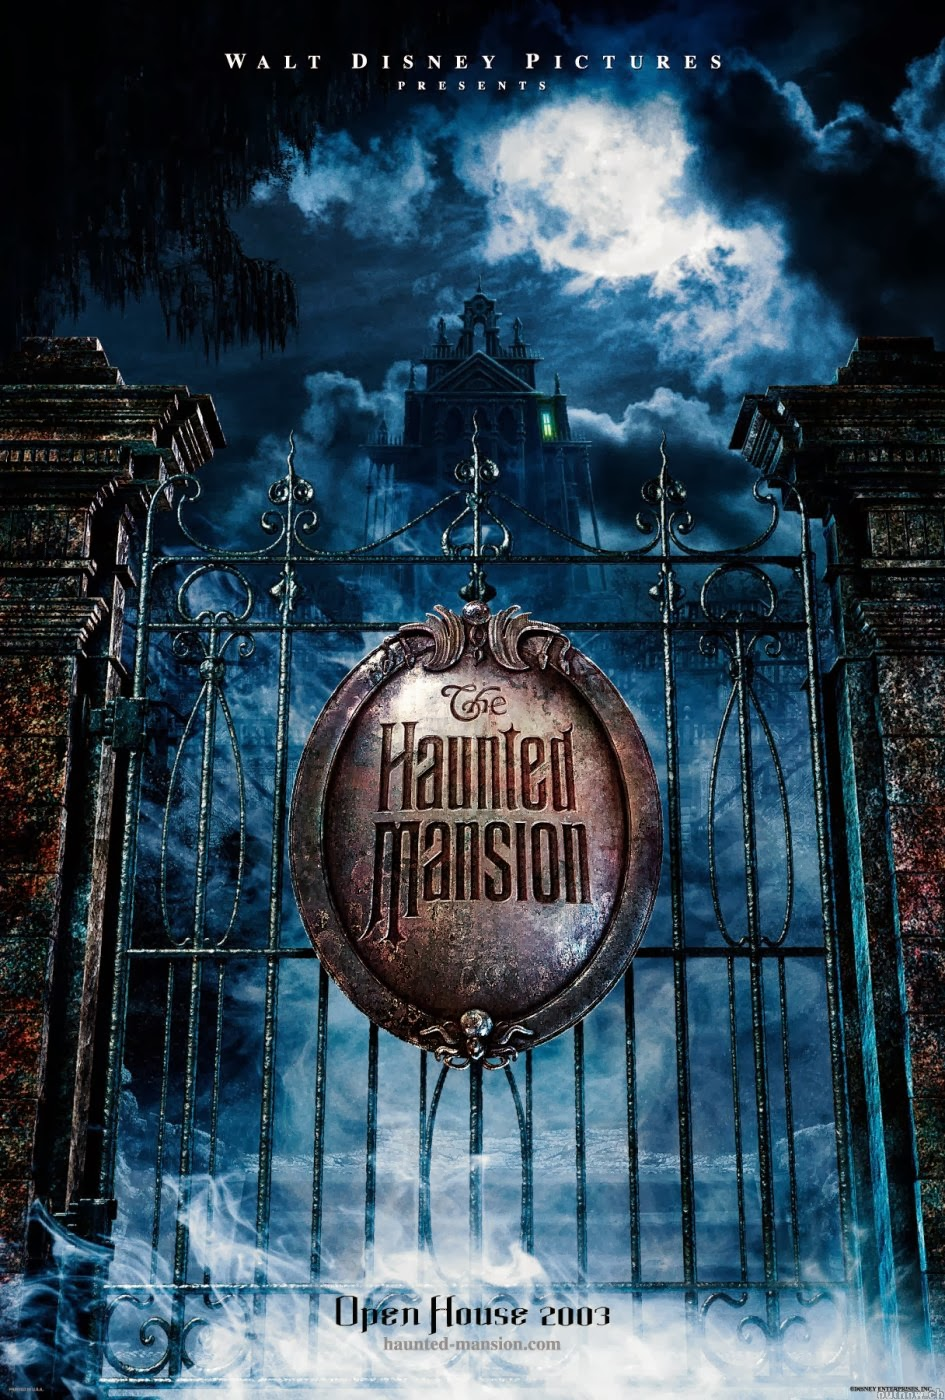 Hubbs Movie Reviews The Haunted Mansion 2003